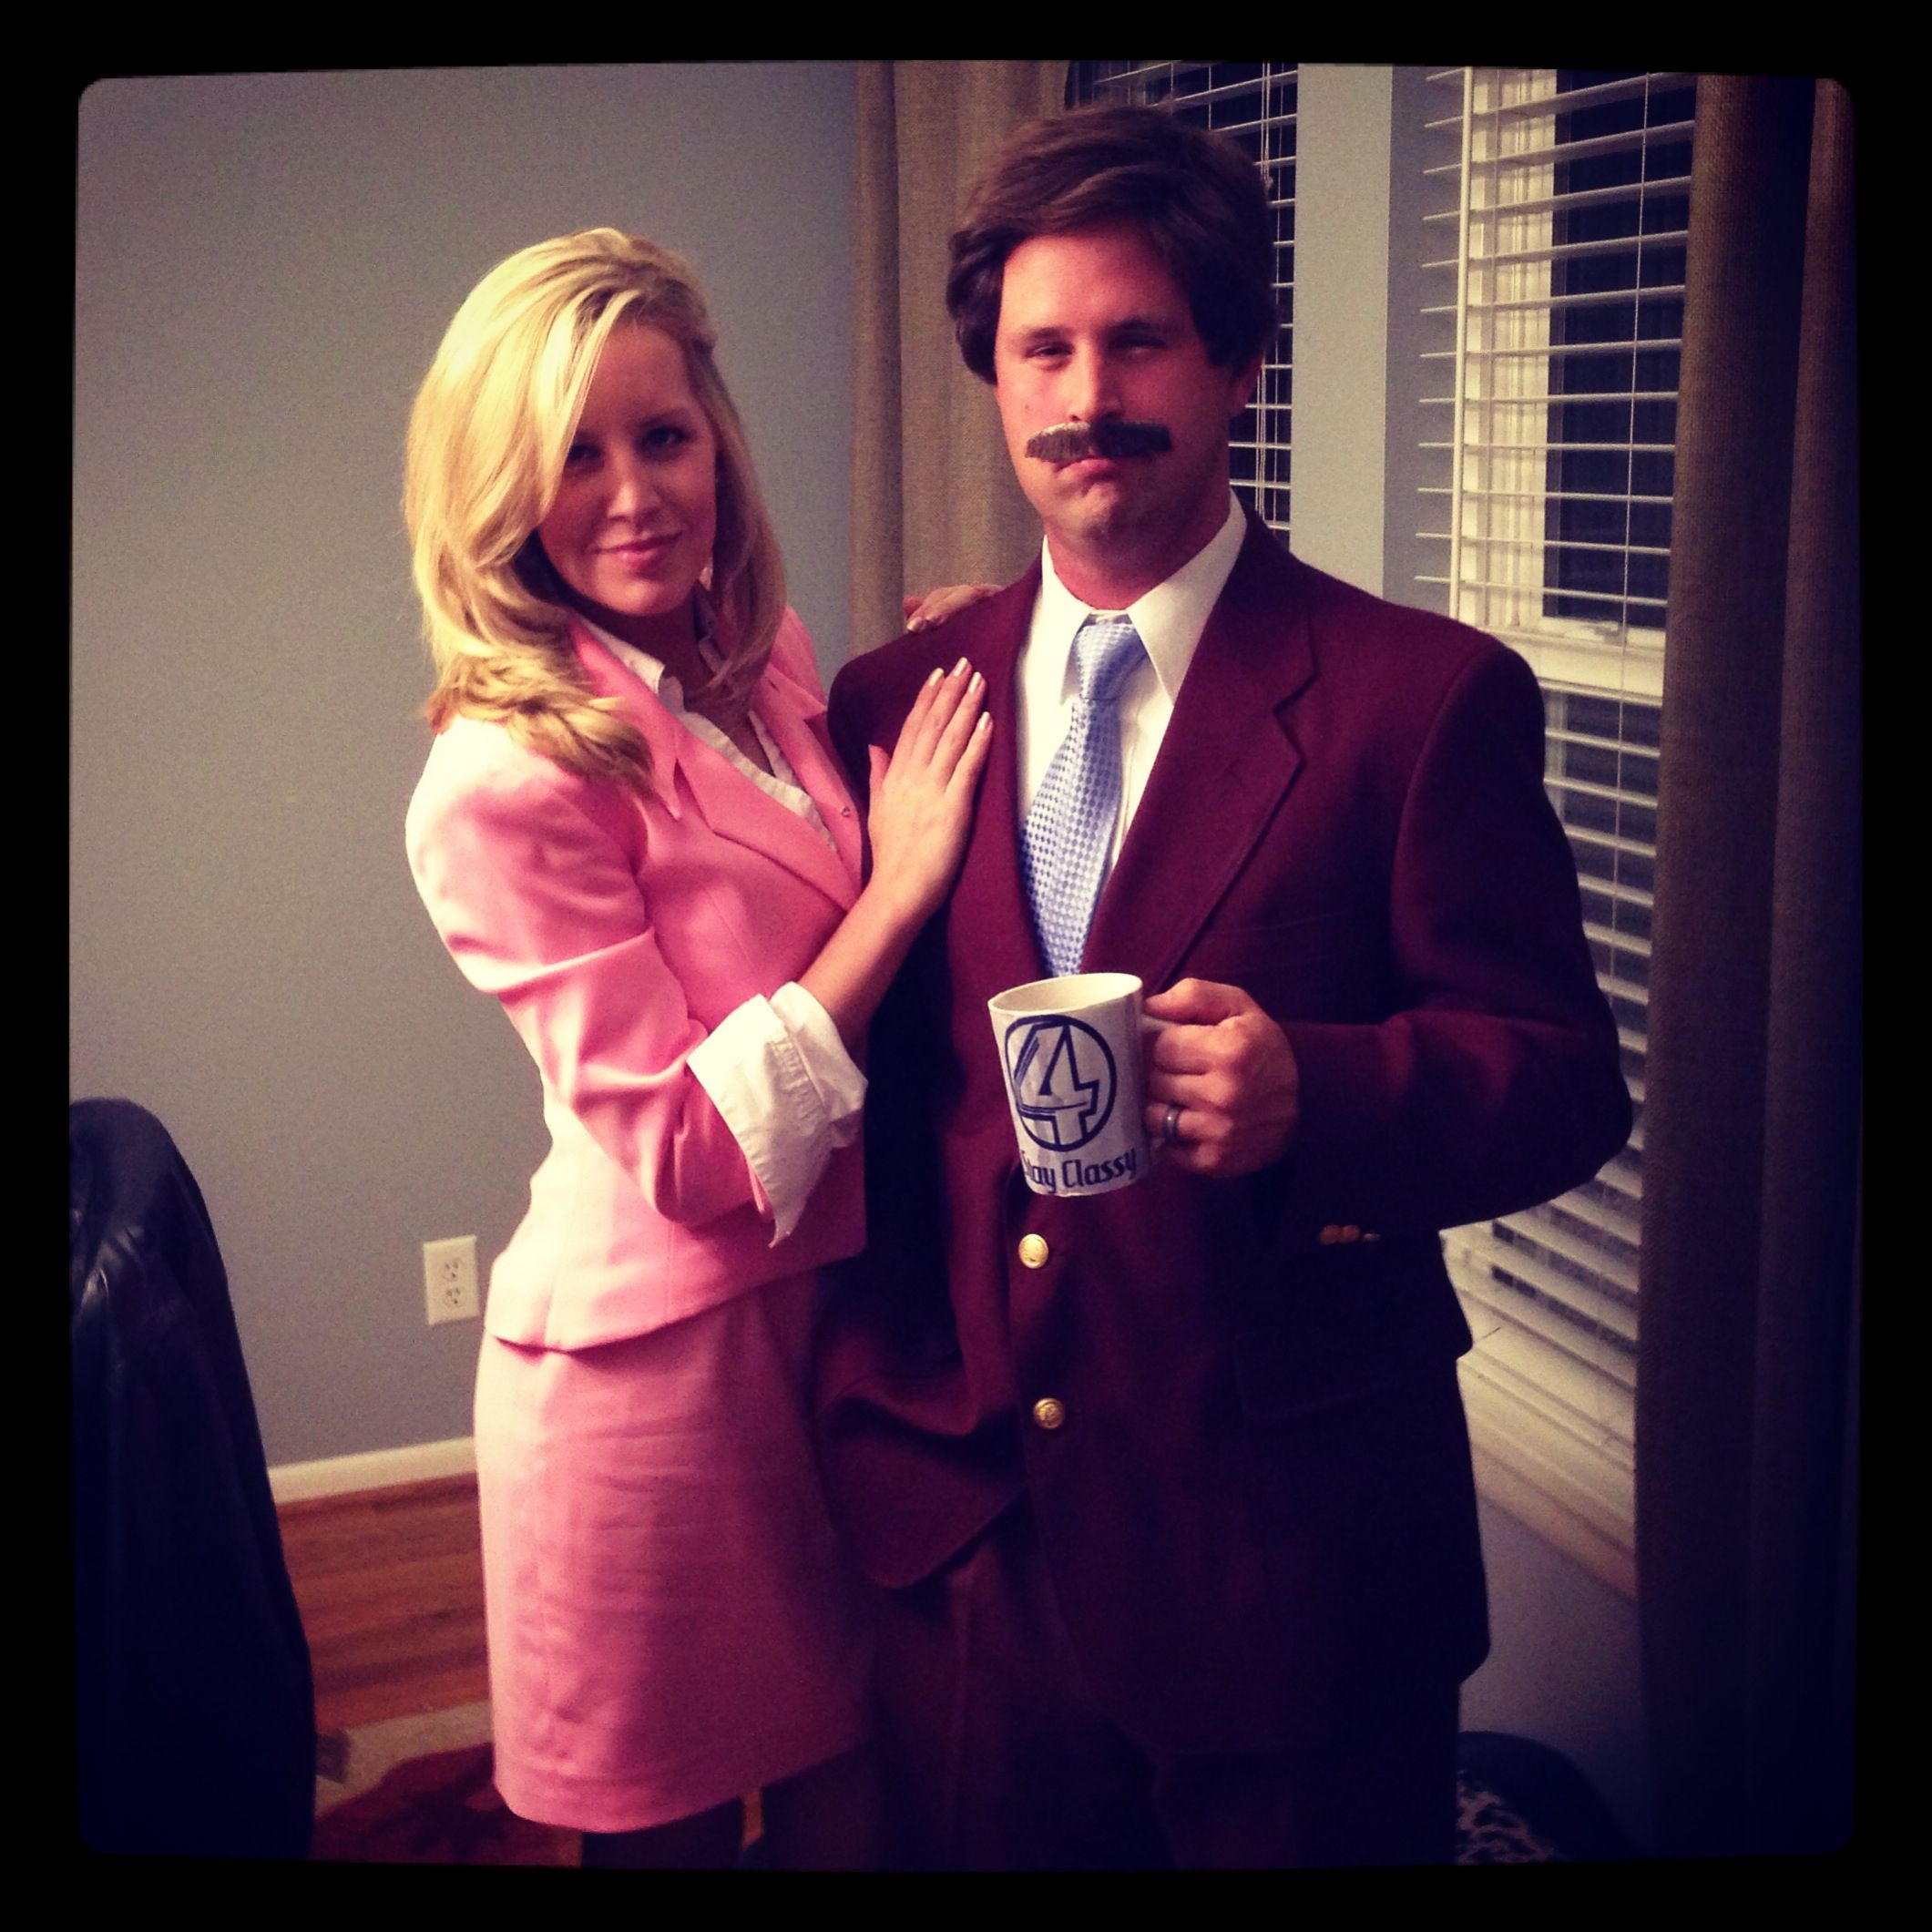 The 19 Best Couples Halloween Costumes of All Time   Ron burgundy ...